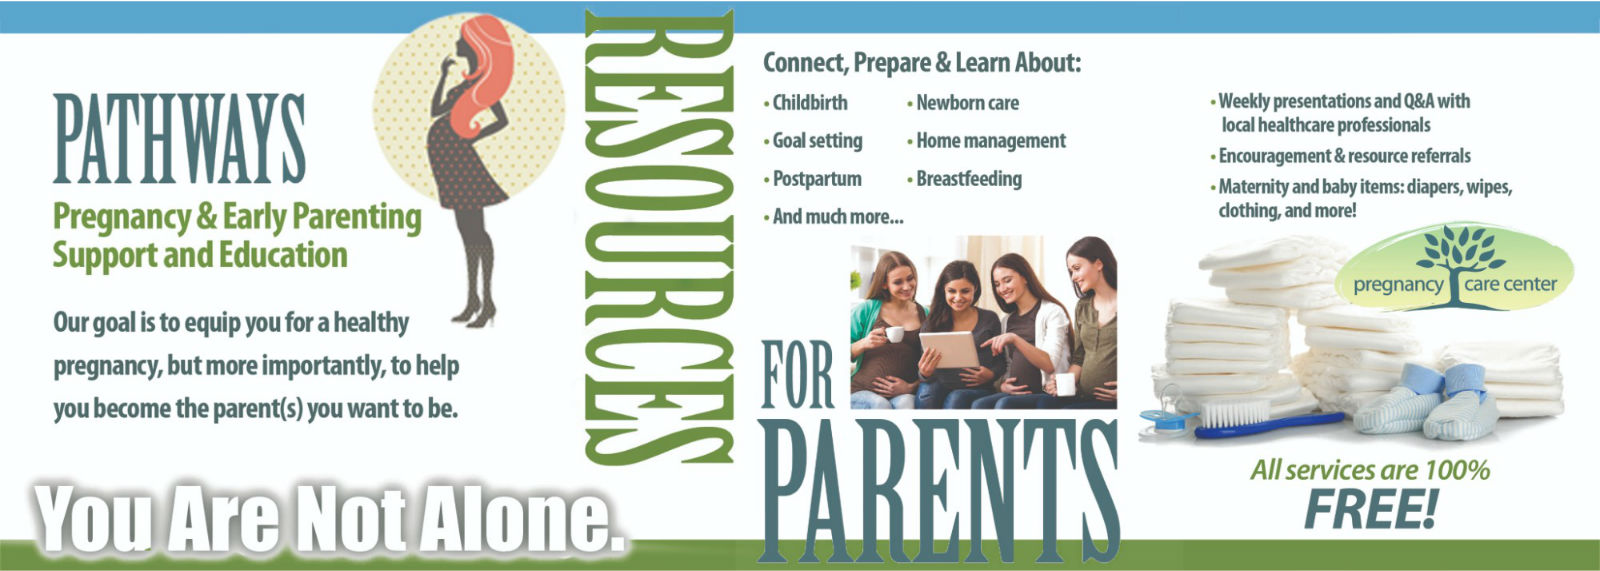 Education & Resources | Free Pregnancy Help